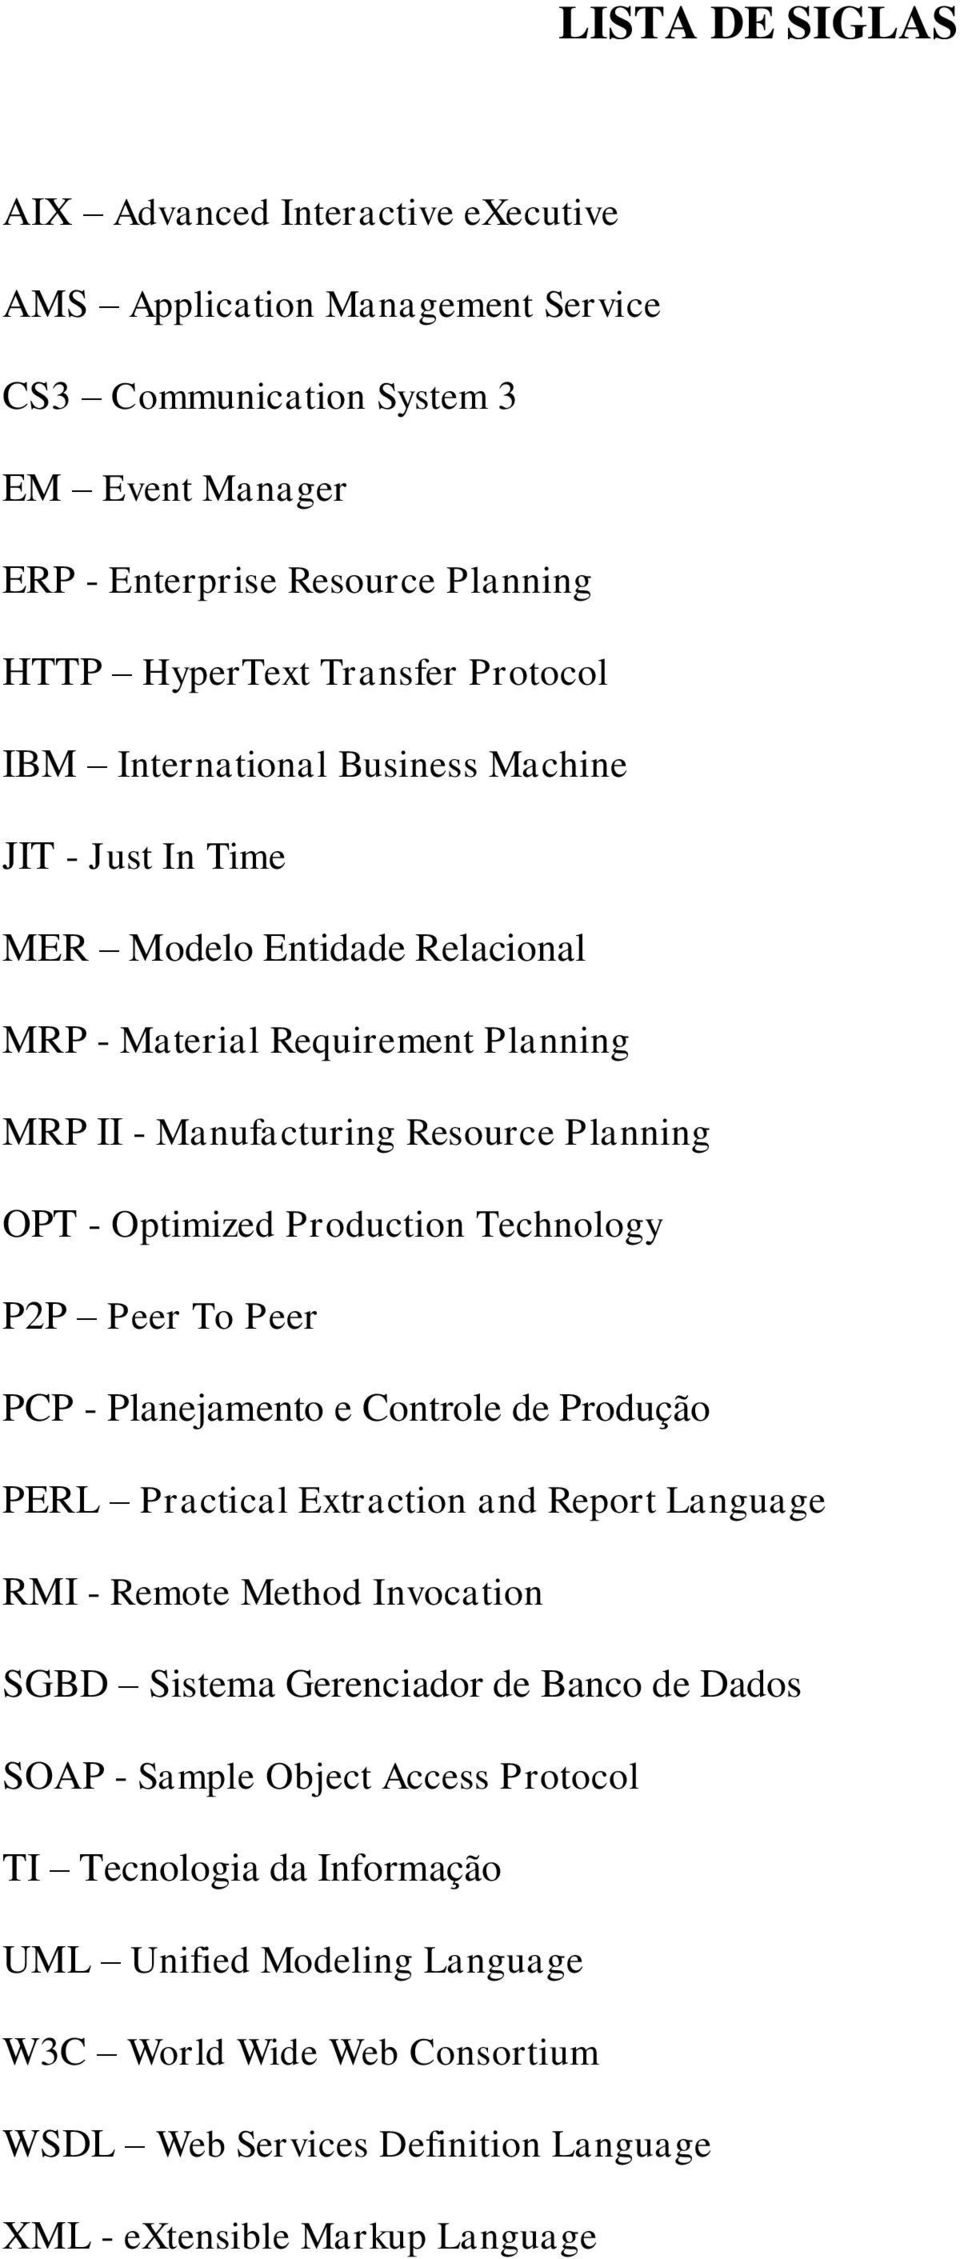 Production Technology P2P Peer To Peer PCP - Planejamento e Controle de Produção PERL Practical Extraction and Report Language RMI - Remote Method Invocation SGBD Sistema Gerenciador de Banco